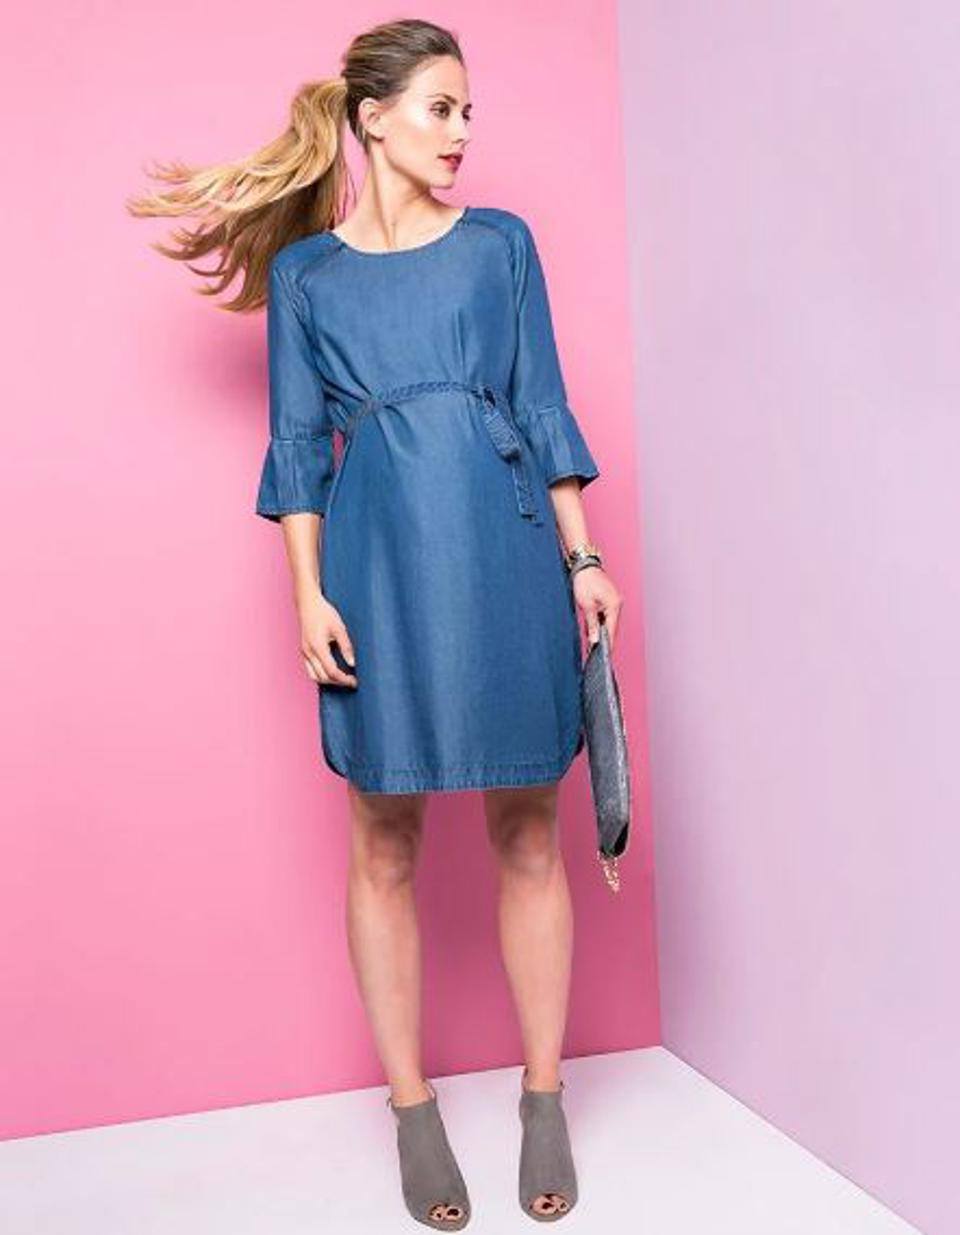 e4e1bde3ab505 Seraphine. Seraphine. Seraphine. Chambray Denim Maternity and Nursing Dress  by Seraphine